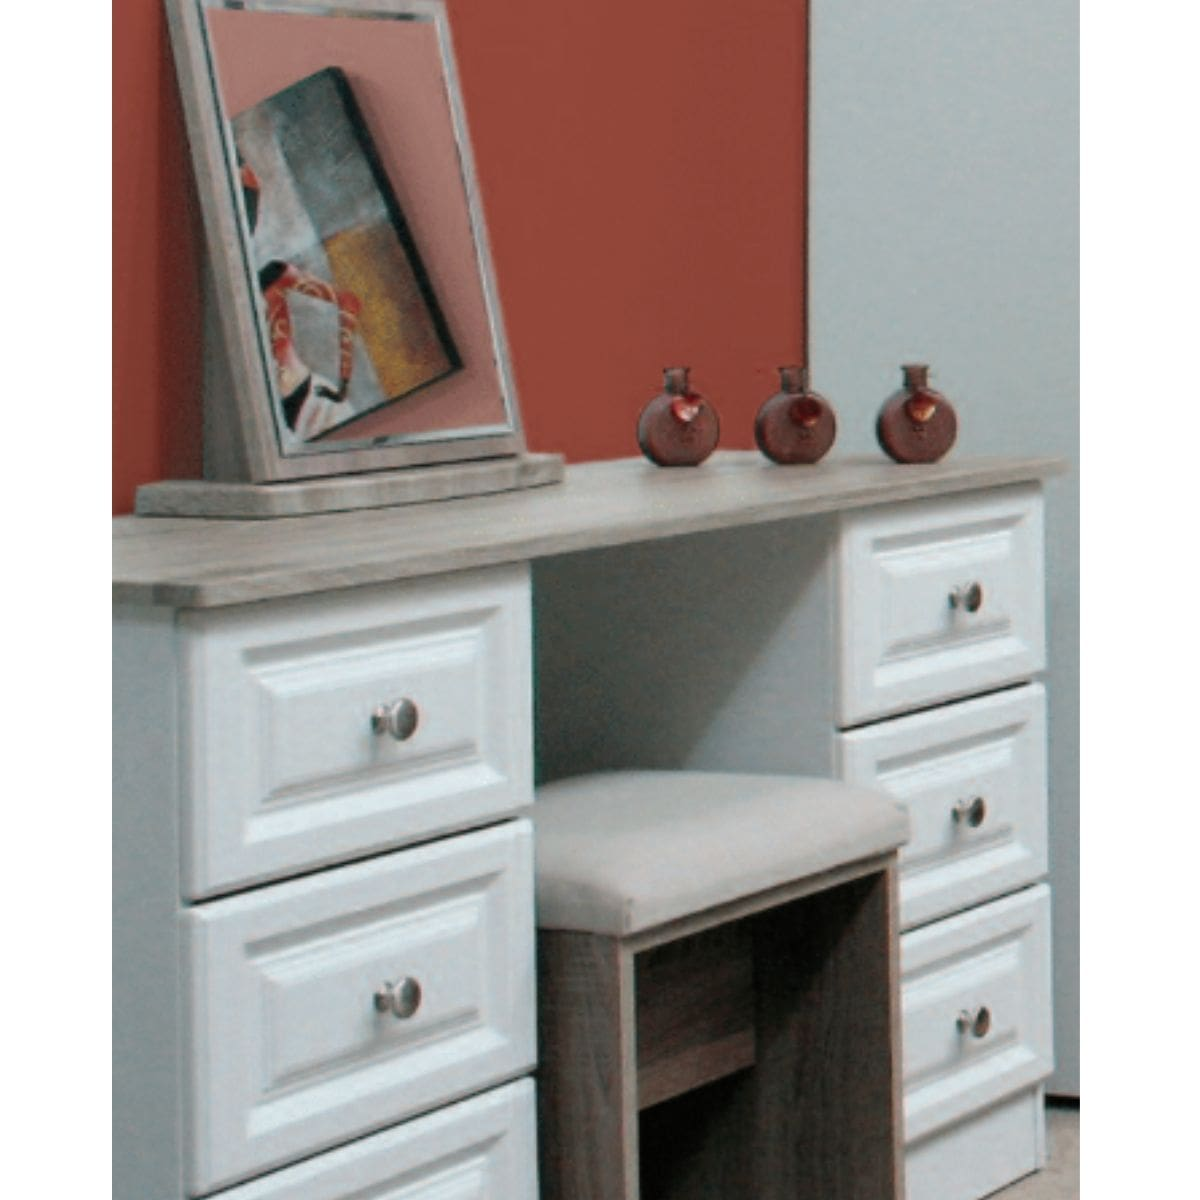 Glandor Dressing Table